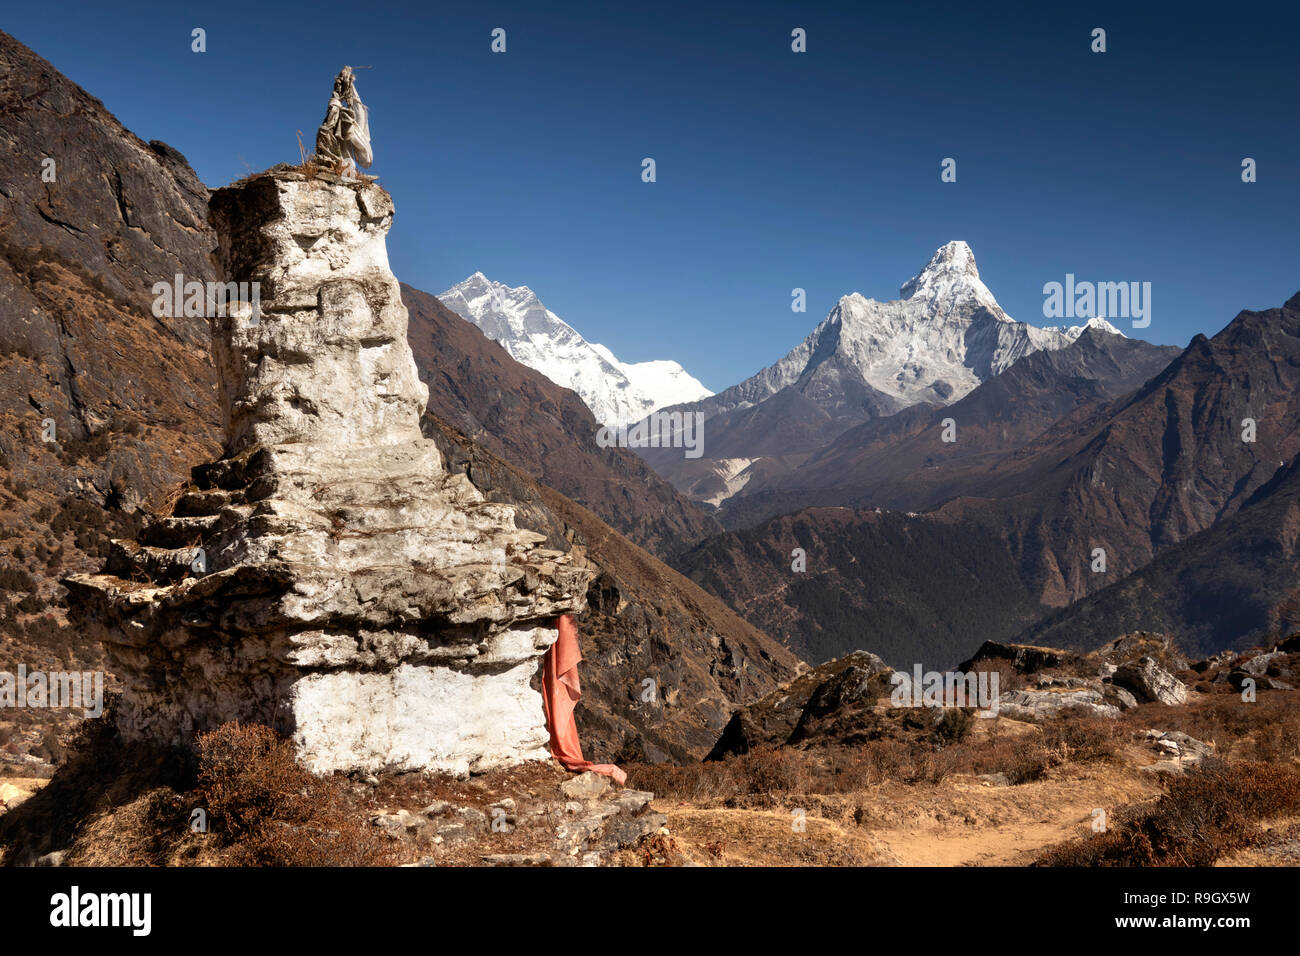 Nepal, Everest Base Camp Trek, Khumjung, traditional old chorten with view of Ama Dablam and Lhotse mountains - Stock Image